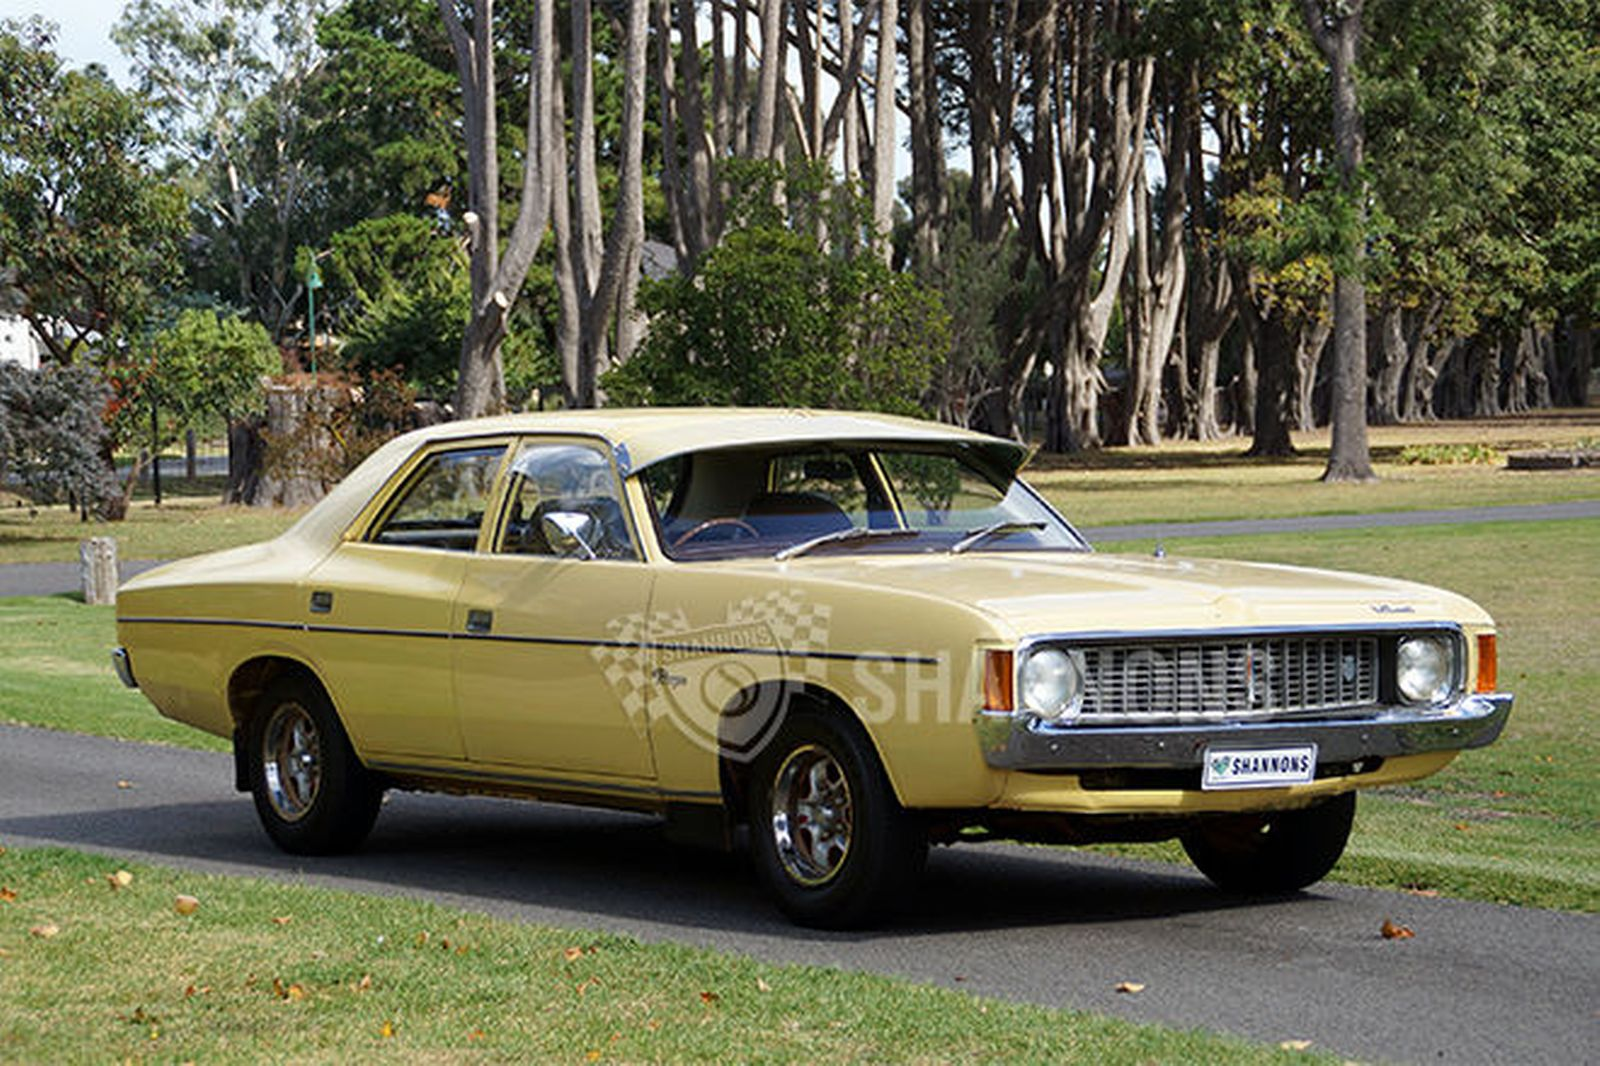 1974 Chrysler Valiant #18